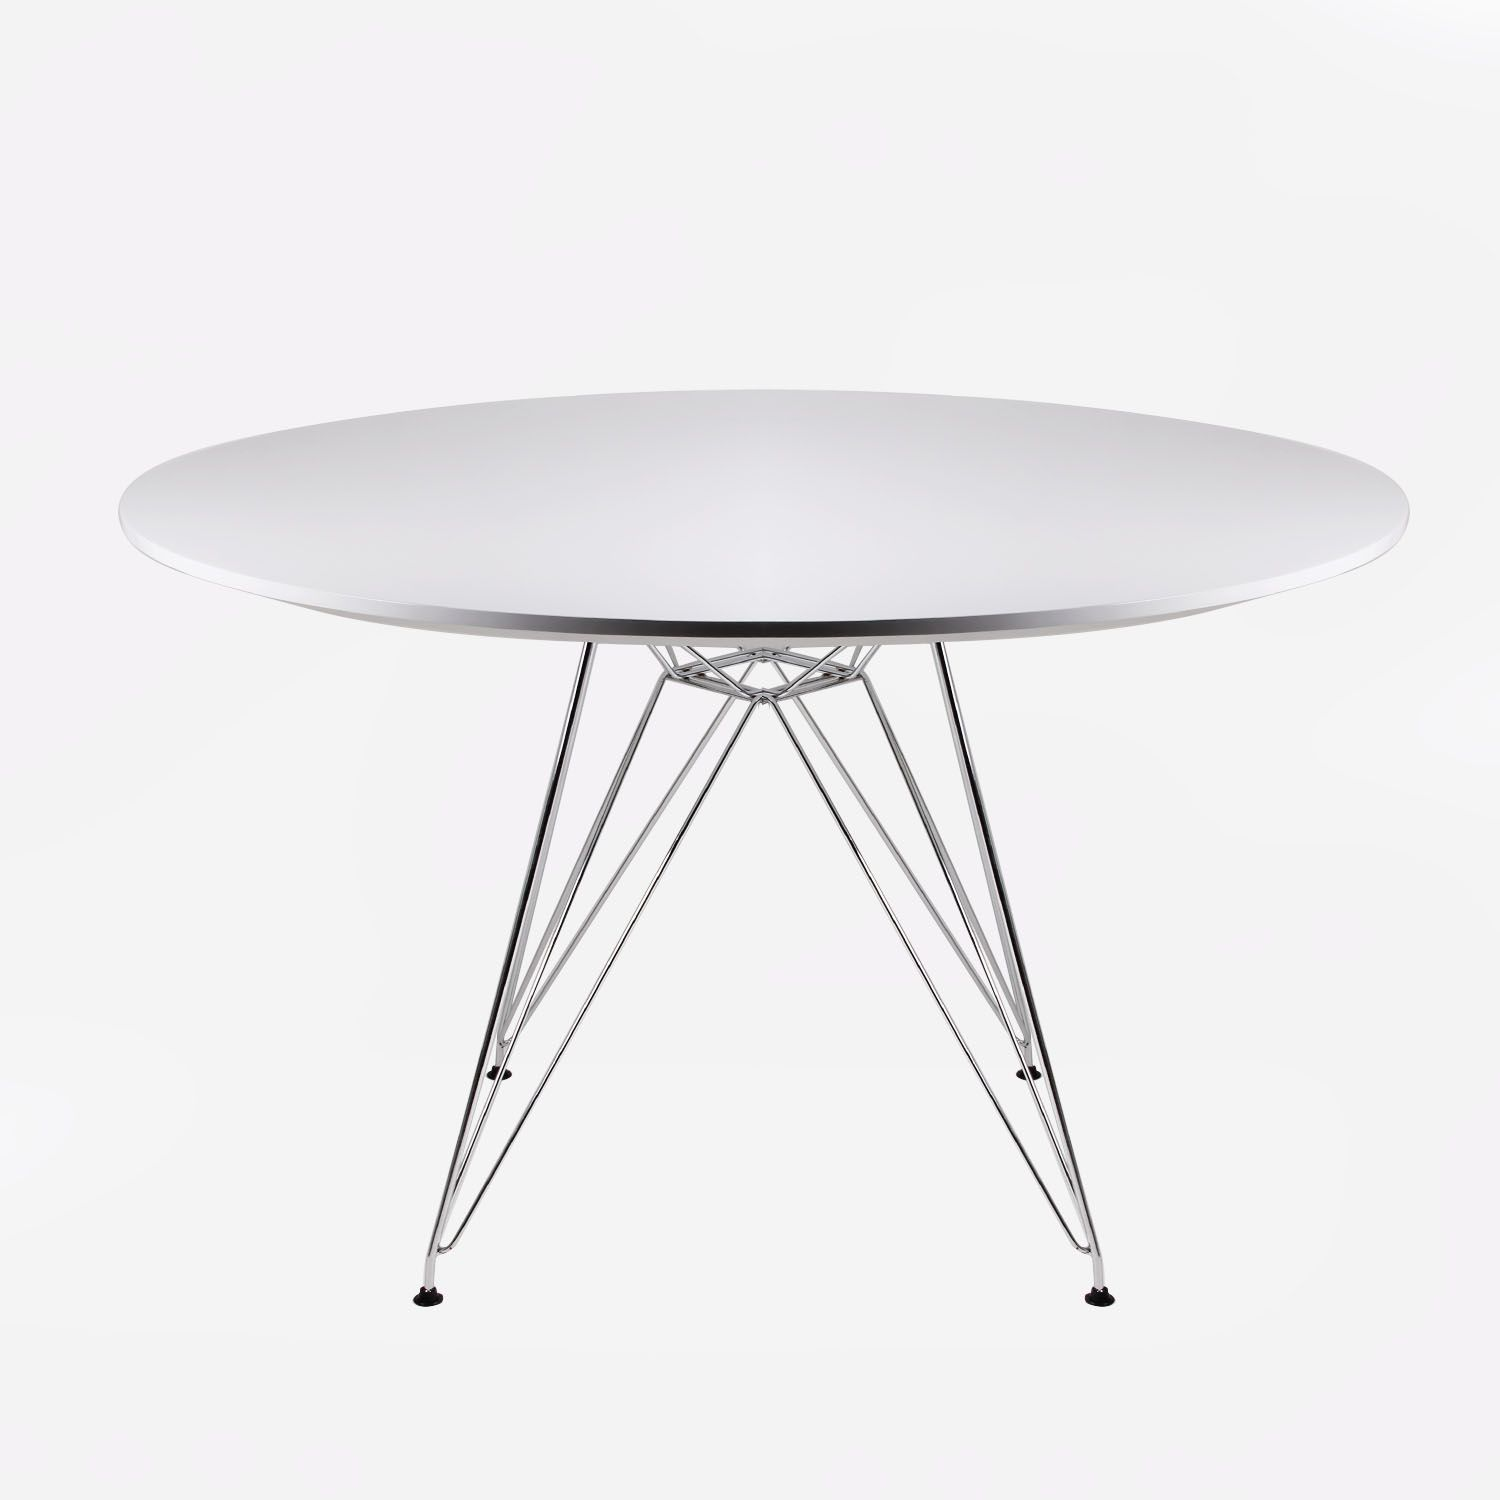 Tisch Eames Tisch Eames Tower Style 100 Cm Appartement Dinning Table